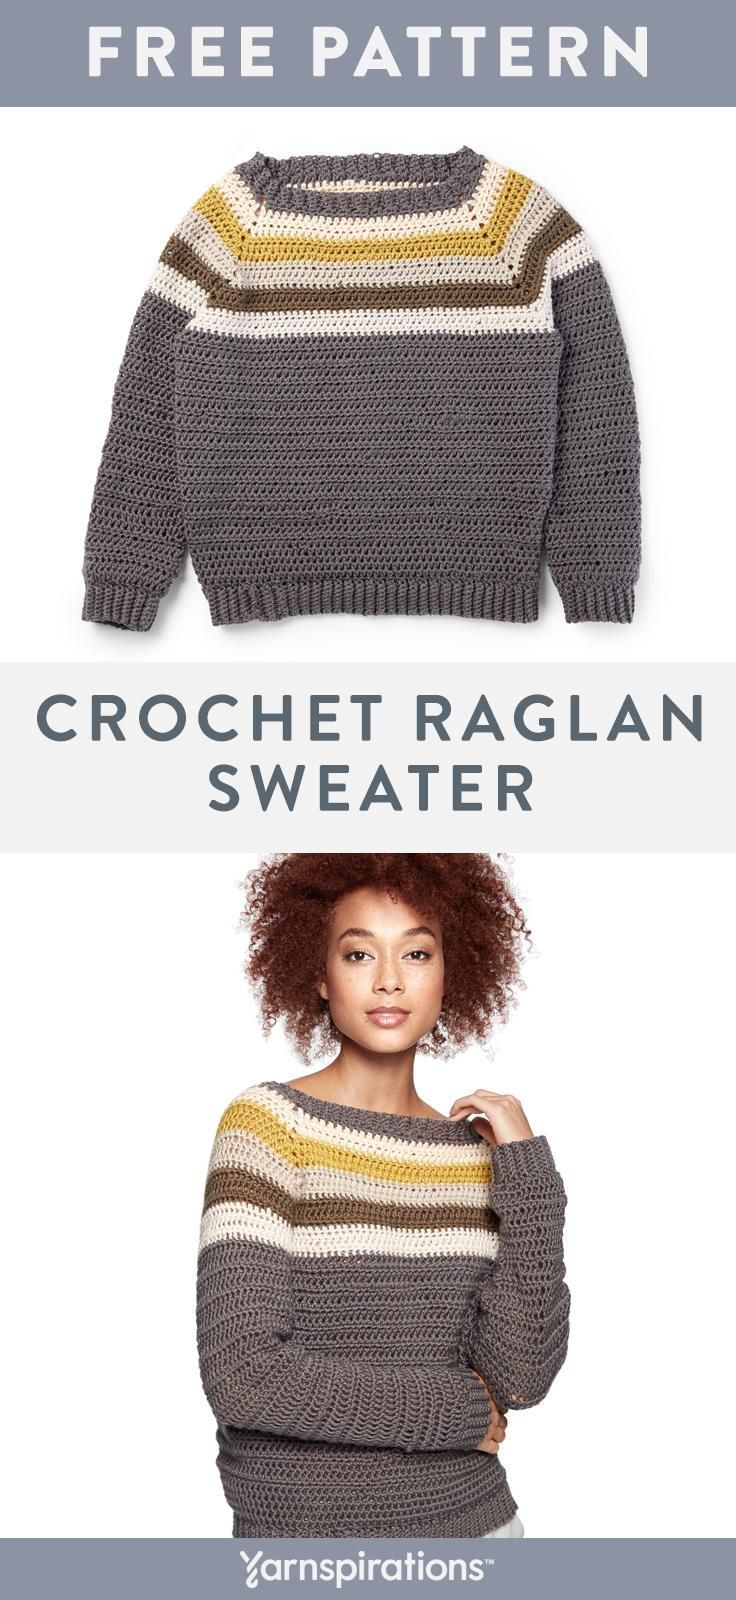 This free crochet raglan sweater pattern is worked from the